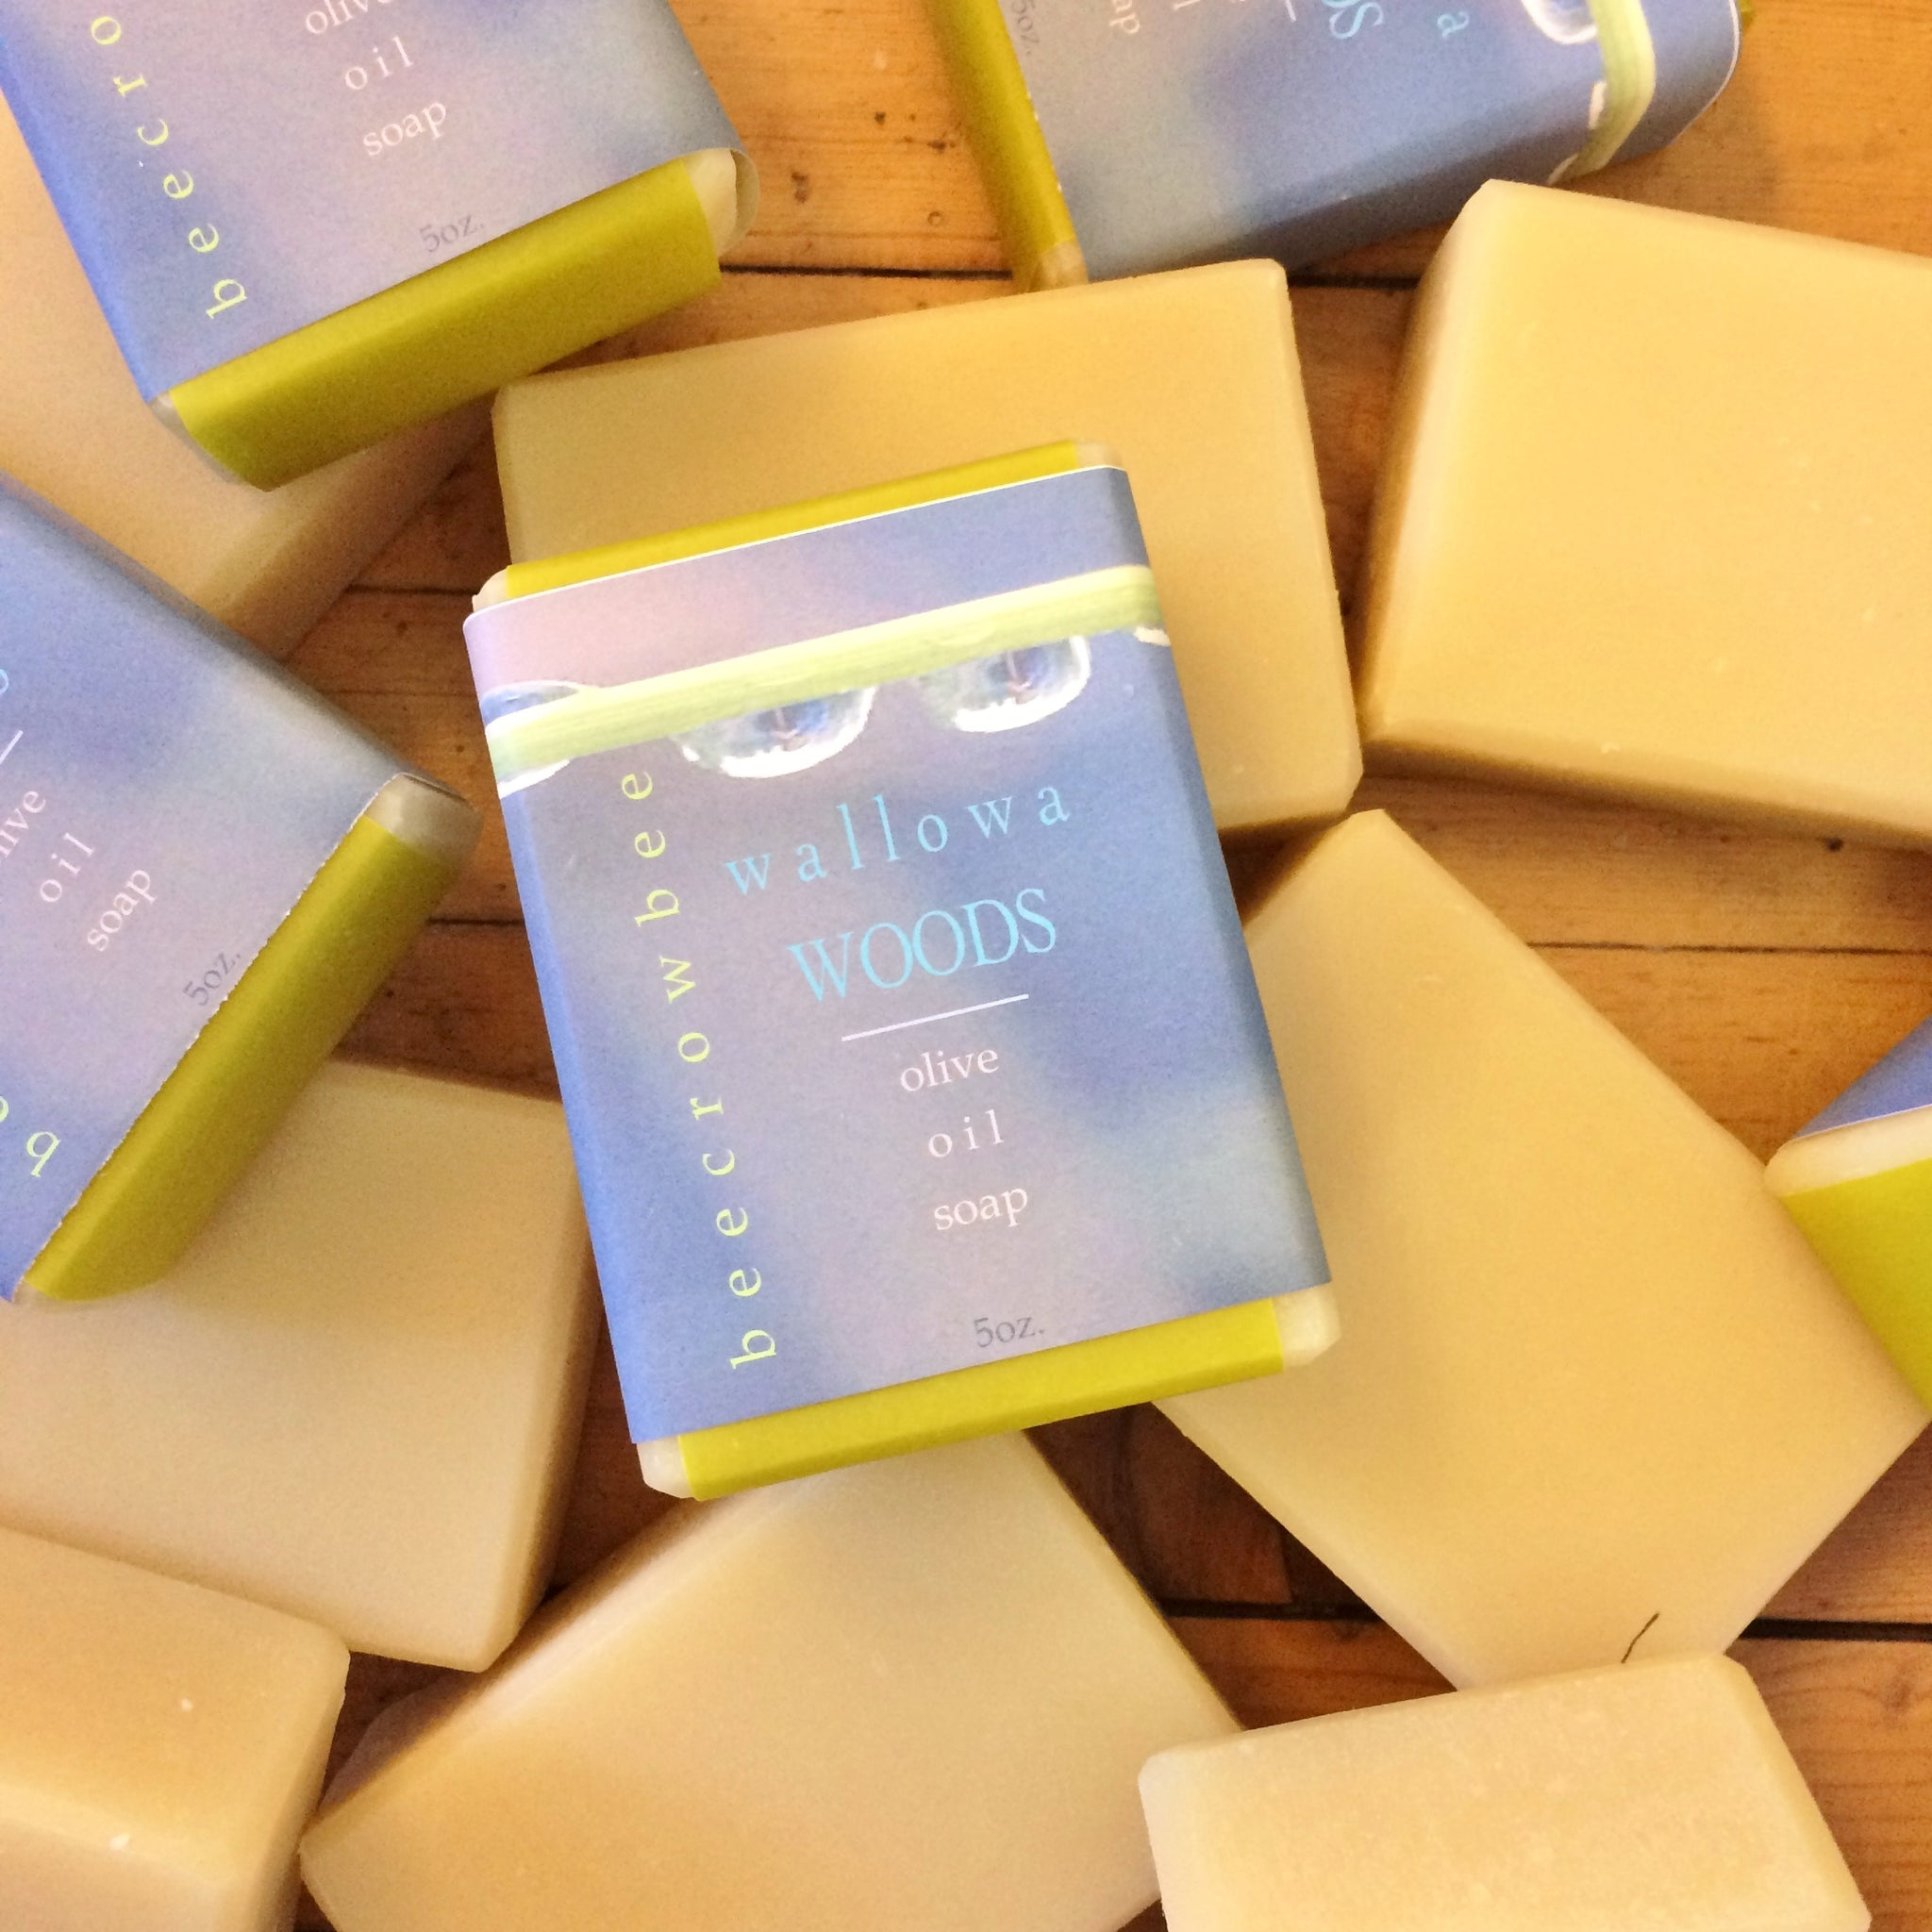 wallowa woods soap